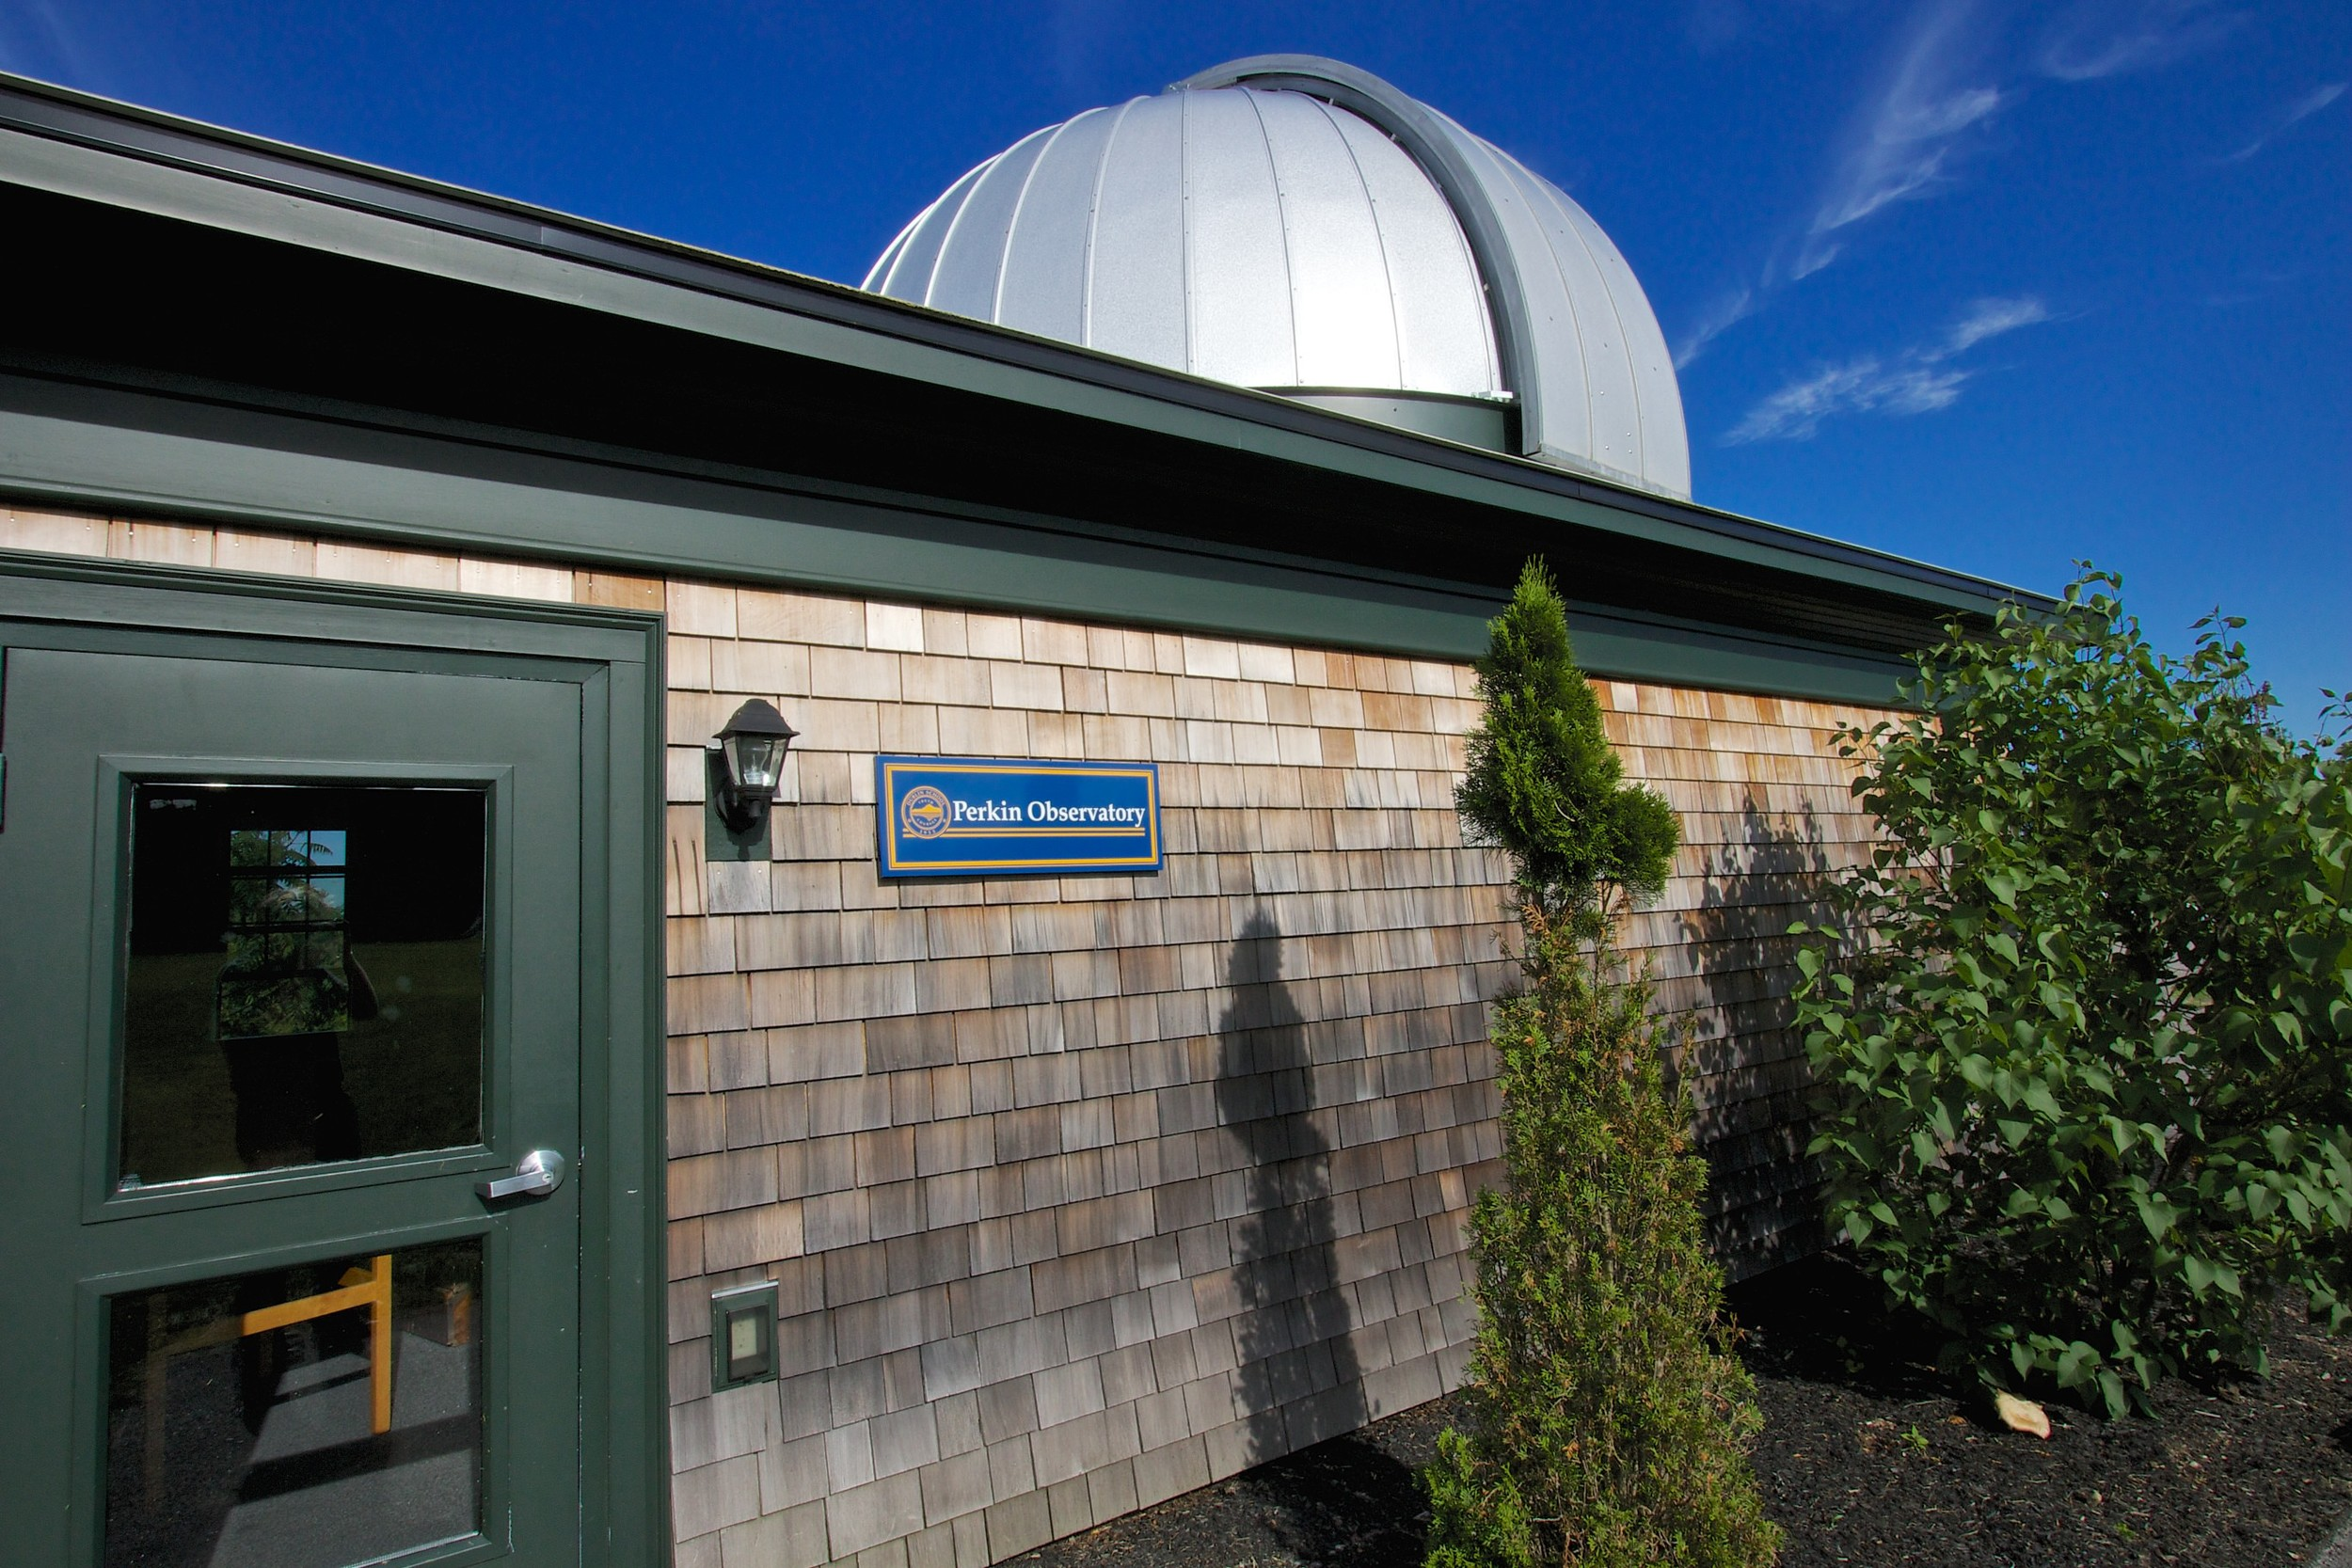 The Perkin Observatory